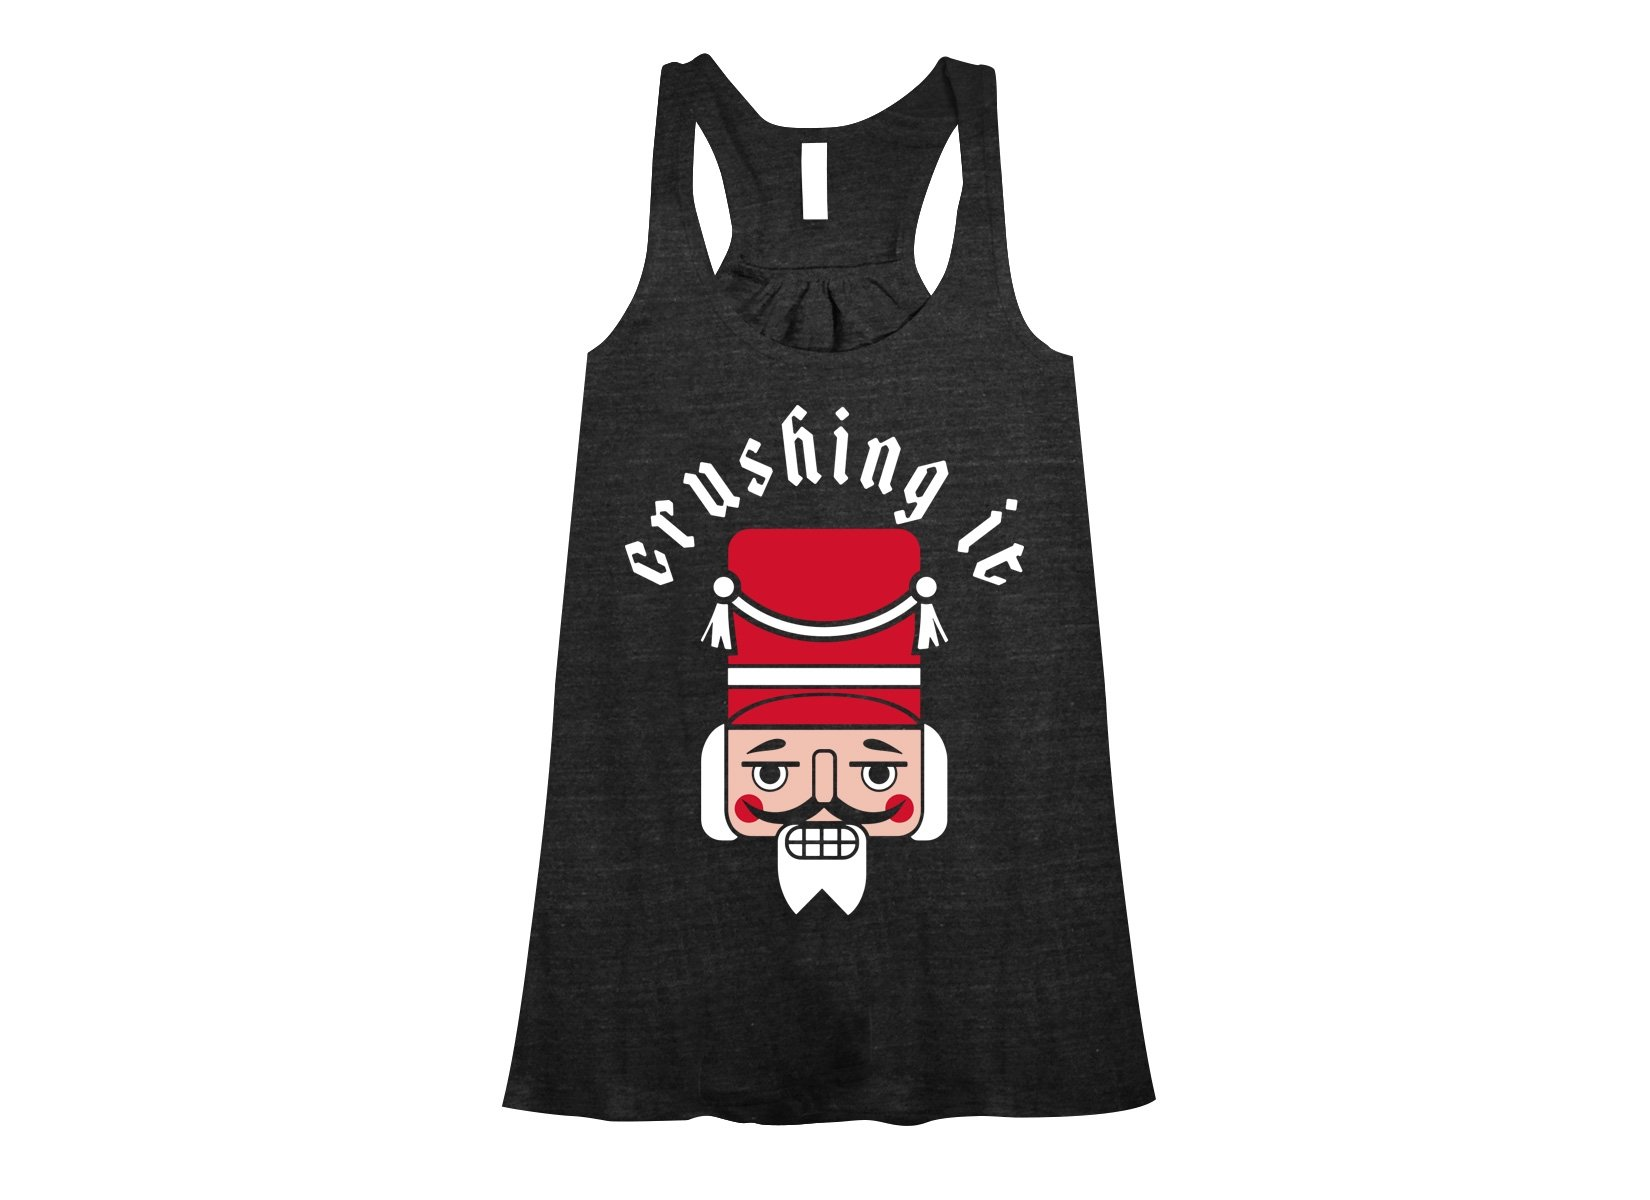 Crushing It on Womens Tanks T-Shirt